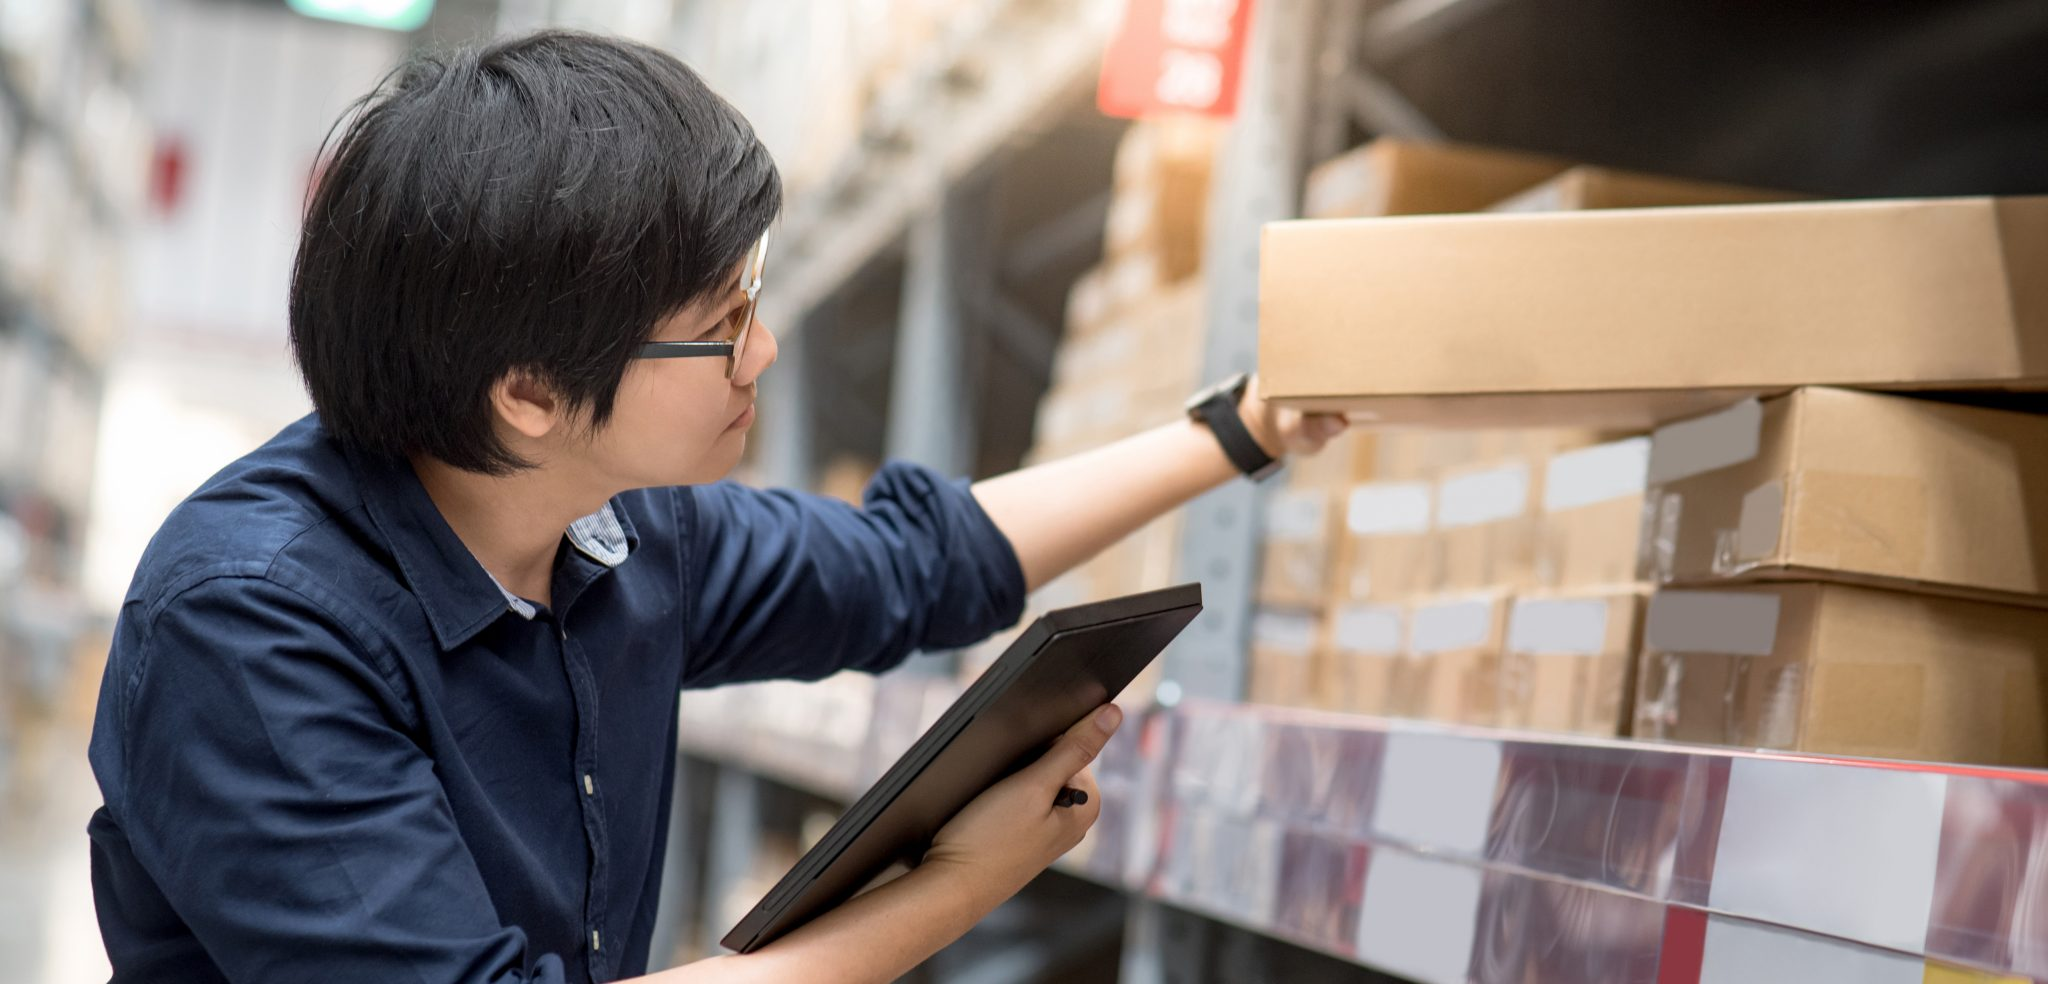 Inventory Management Tips To Help Your Food Service Operation Stay Organized